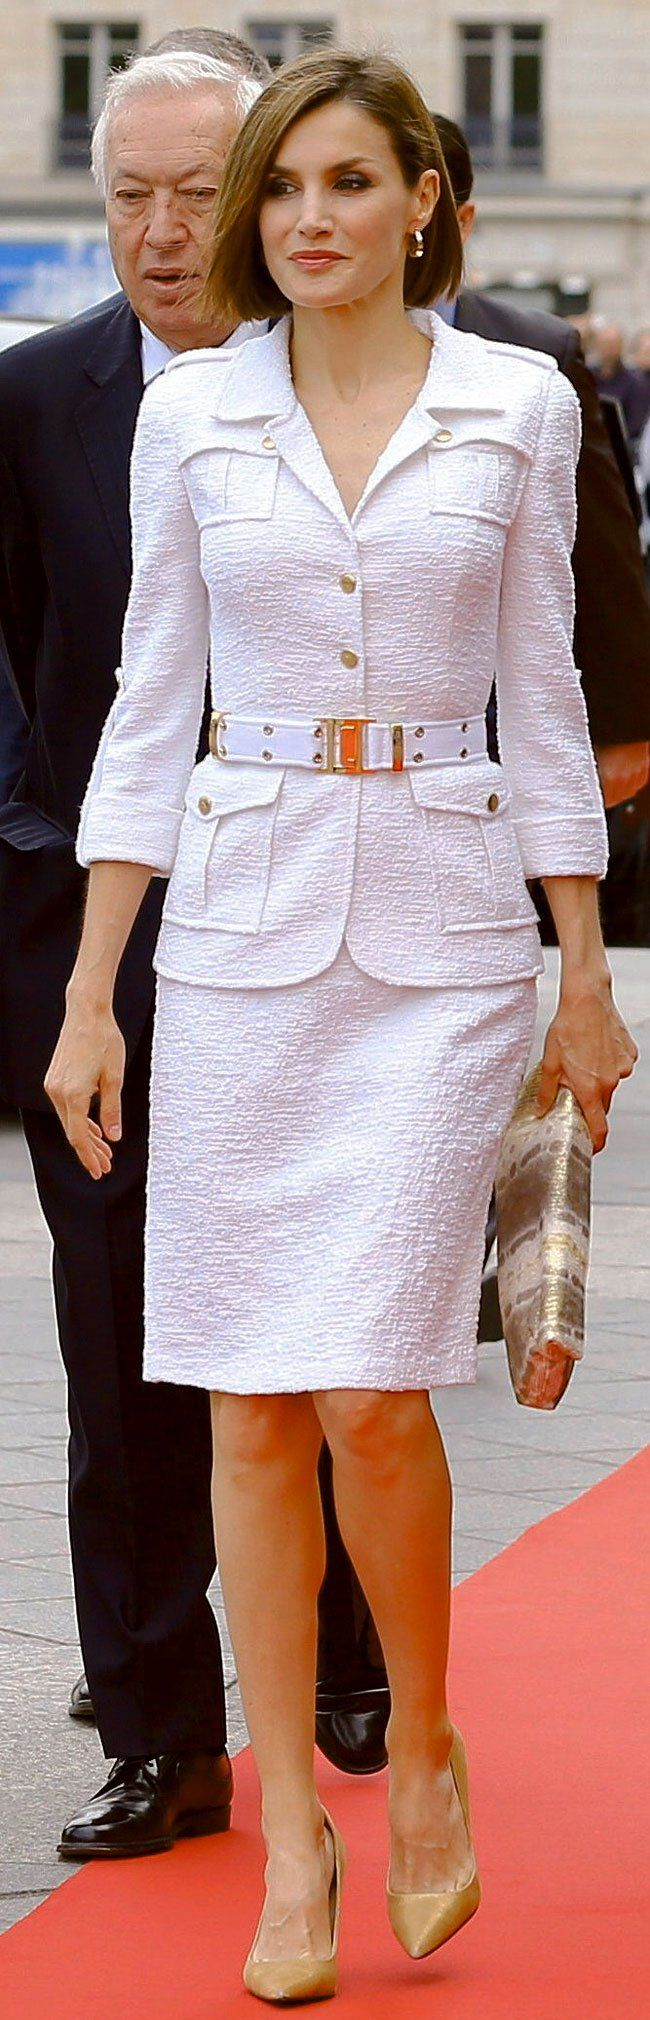 Queen Letizia of Spain attends a ceremony at Hotel de Ville on 03 June 2015 in Paris France.  For the occasion Doña Letizia wore an elegant, crisp white, Saharan-inspired bouclé skirt suit from Spanish designer Felipe Varela. Doña Letizia cinched the jacket with a matching canvas web belt, also from Varela.